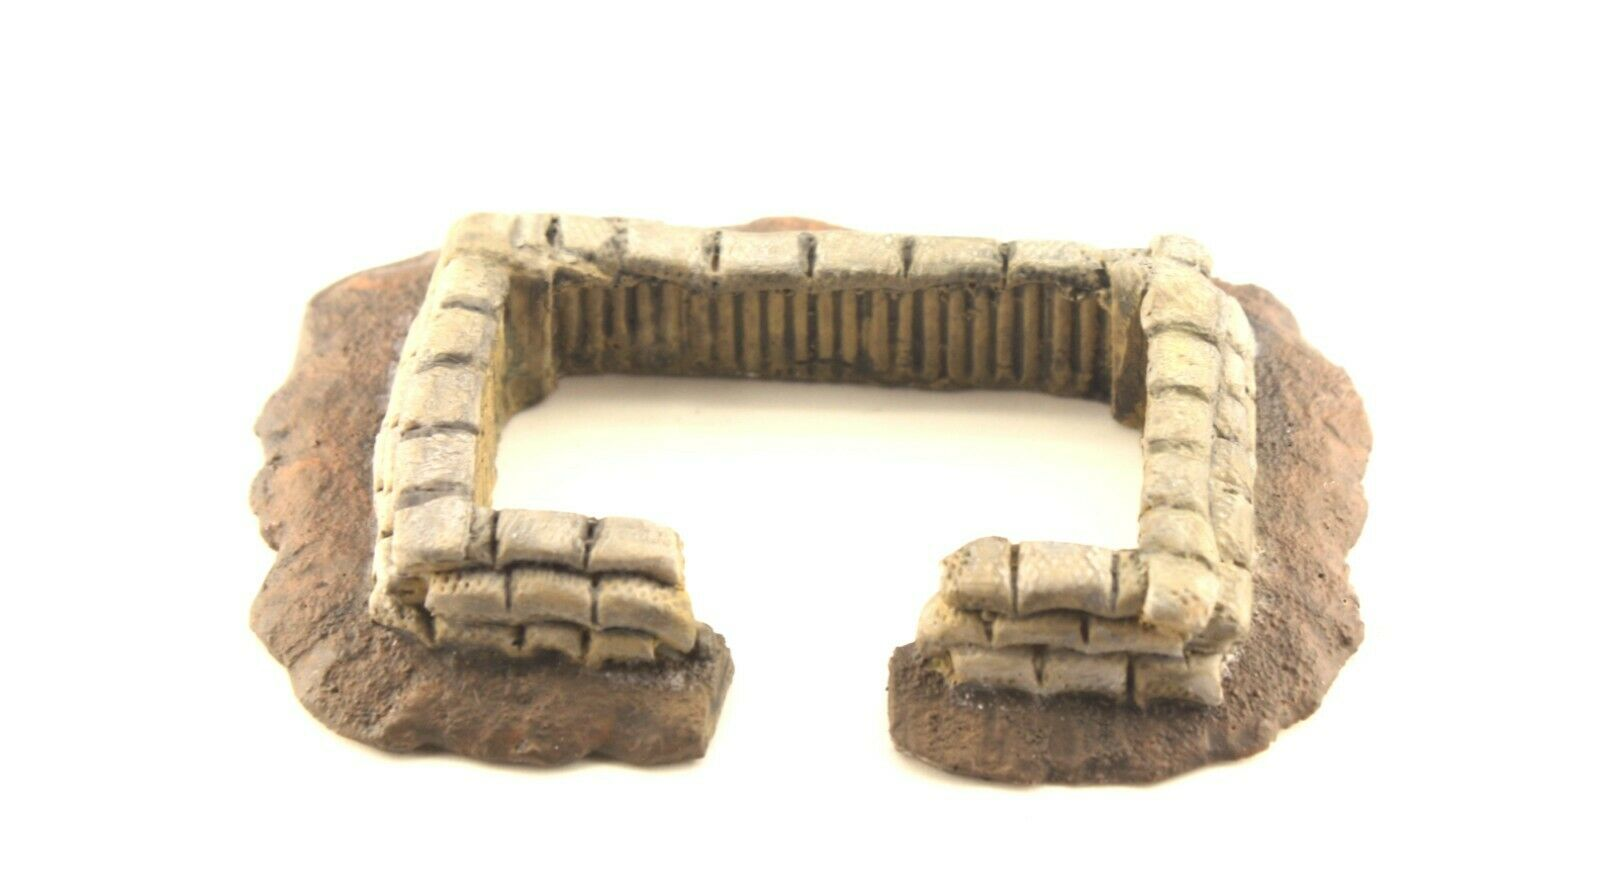 Redog 1/72 Fields Military Fortifications Scale Model Diorama Accessorises /042 - redoguk